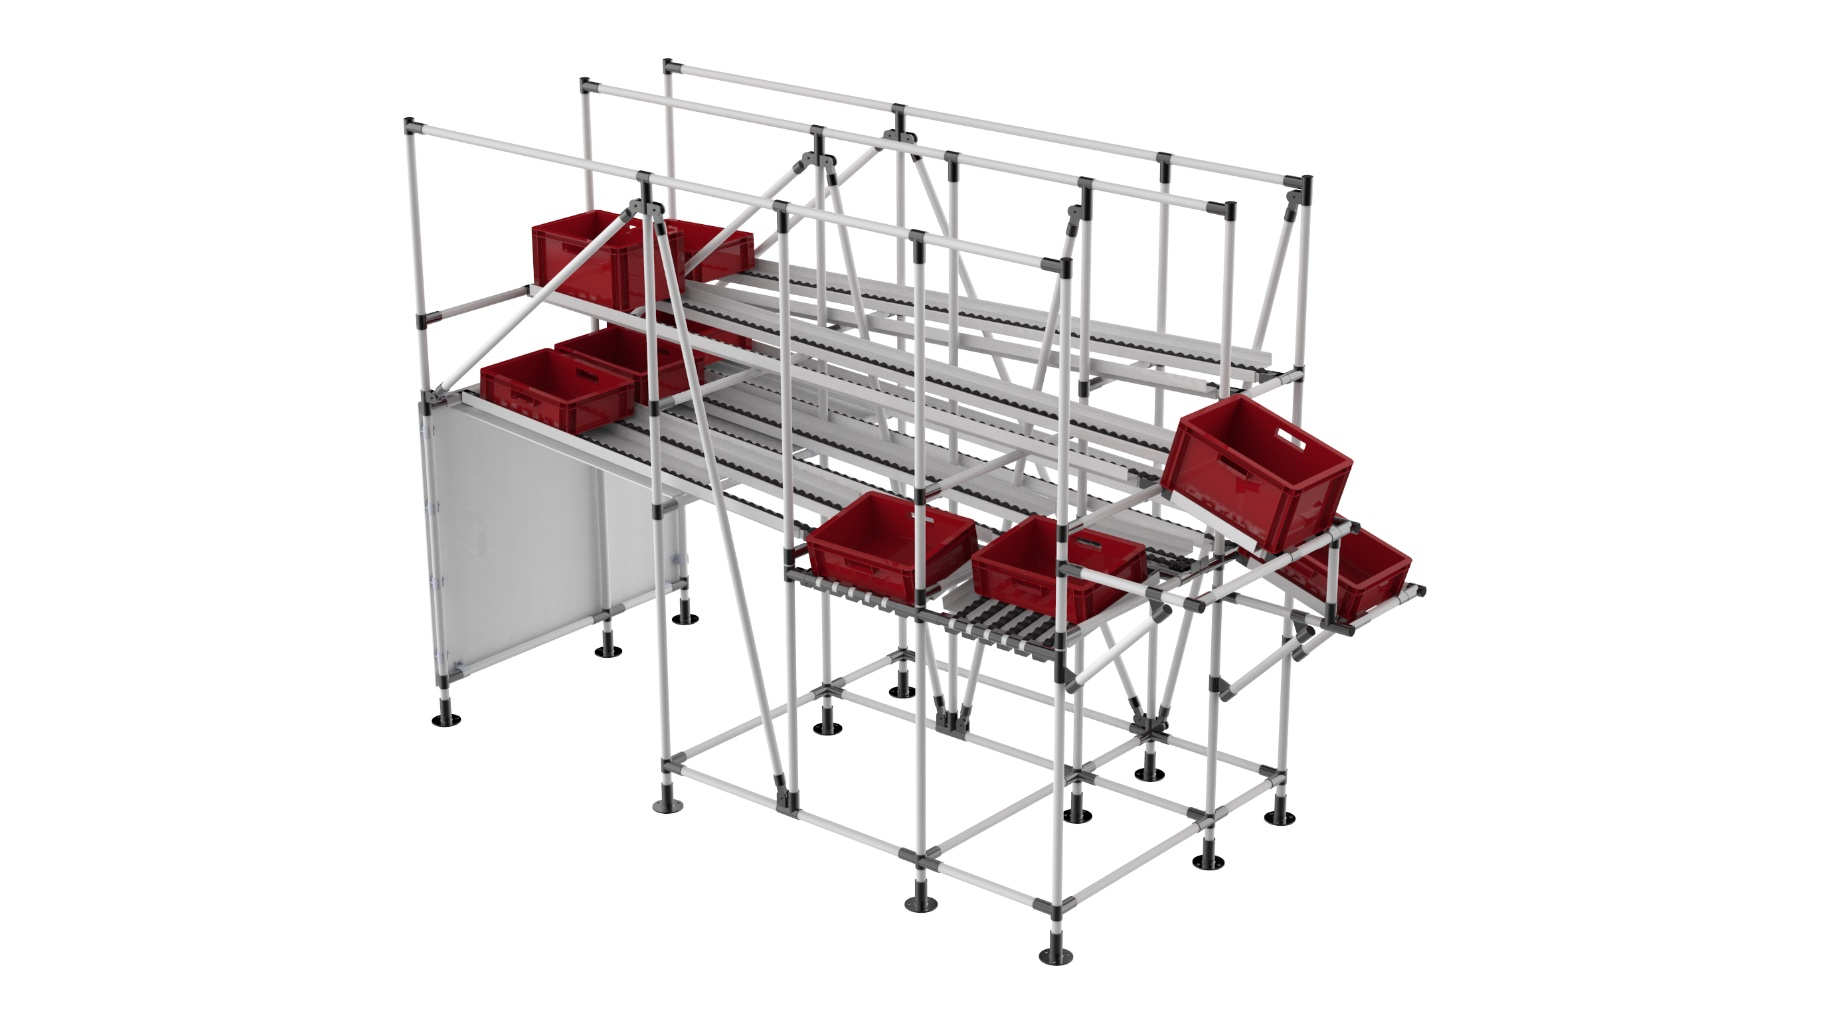 Automotive industry - Bespoke Technical live storage for FIFO distribution of various parts for the assembly linet.